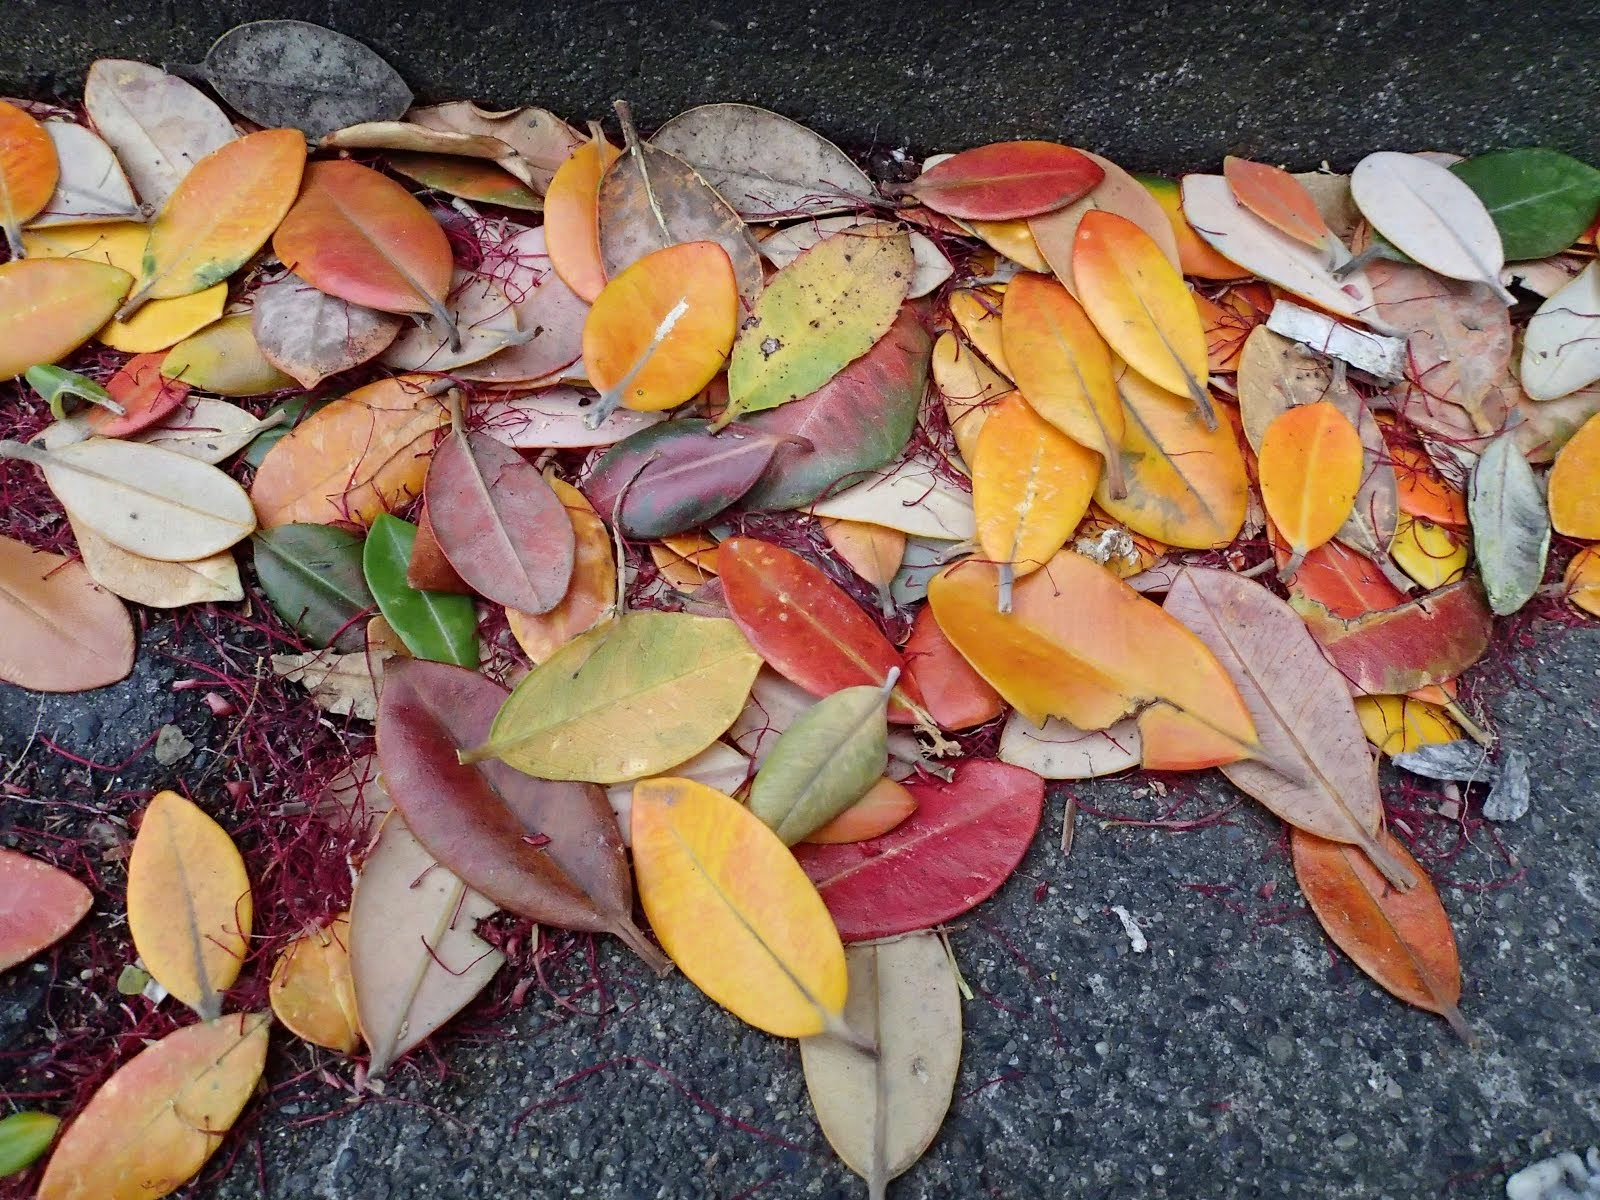 Leaves in the gutter at the railway station